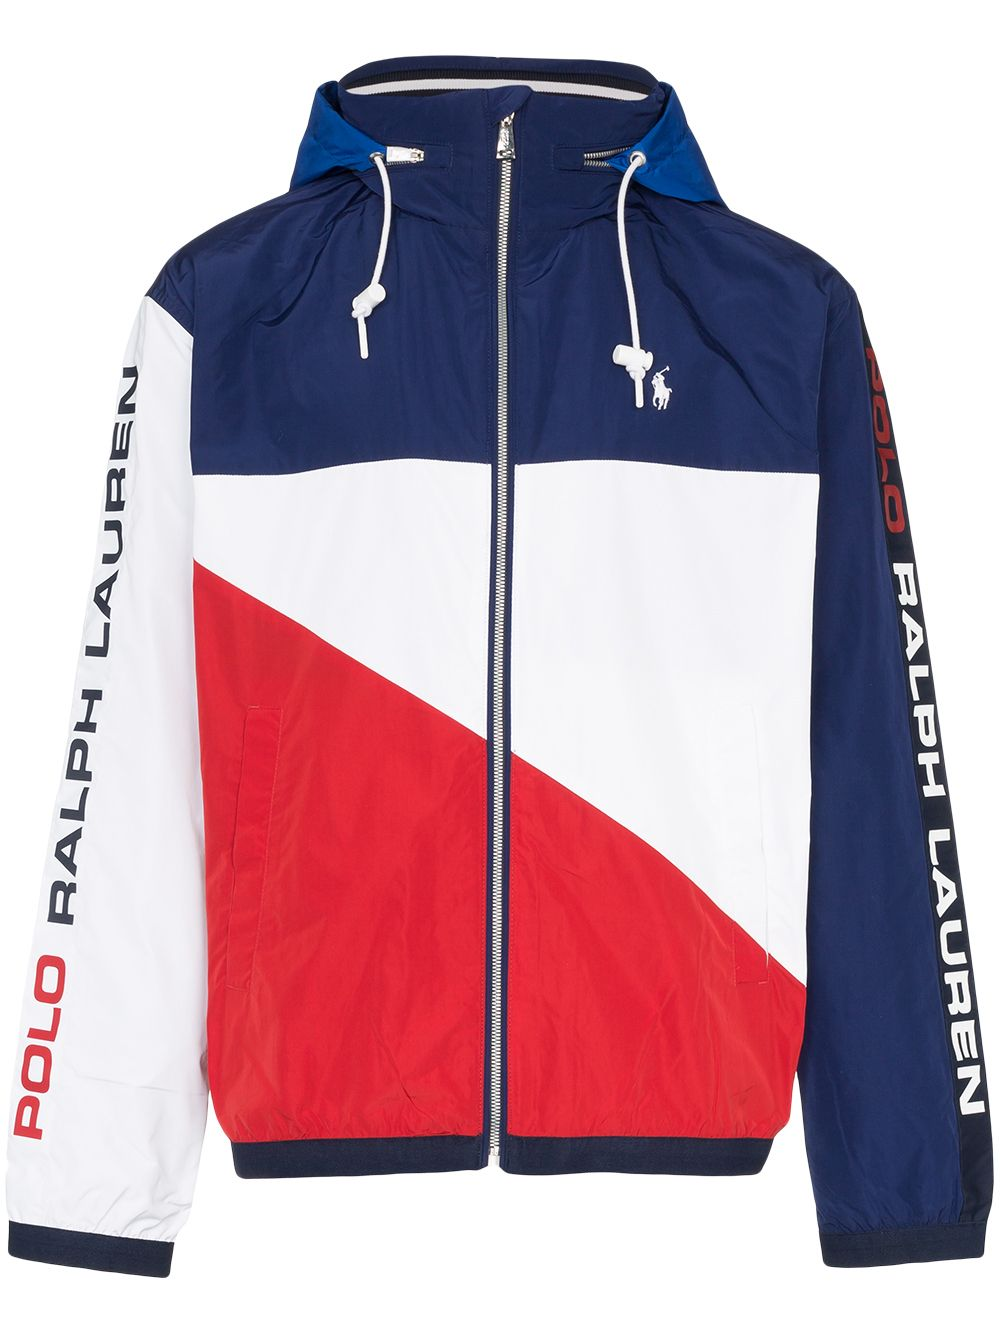 Pace Full Zip Lined Jacket